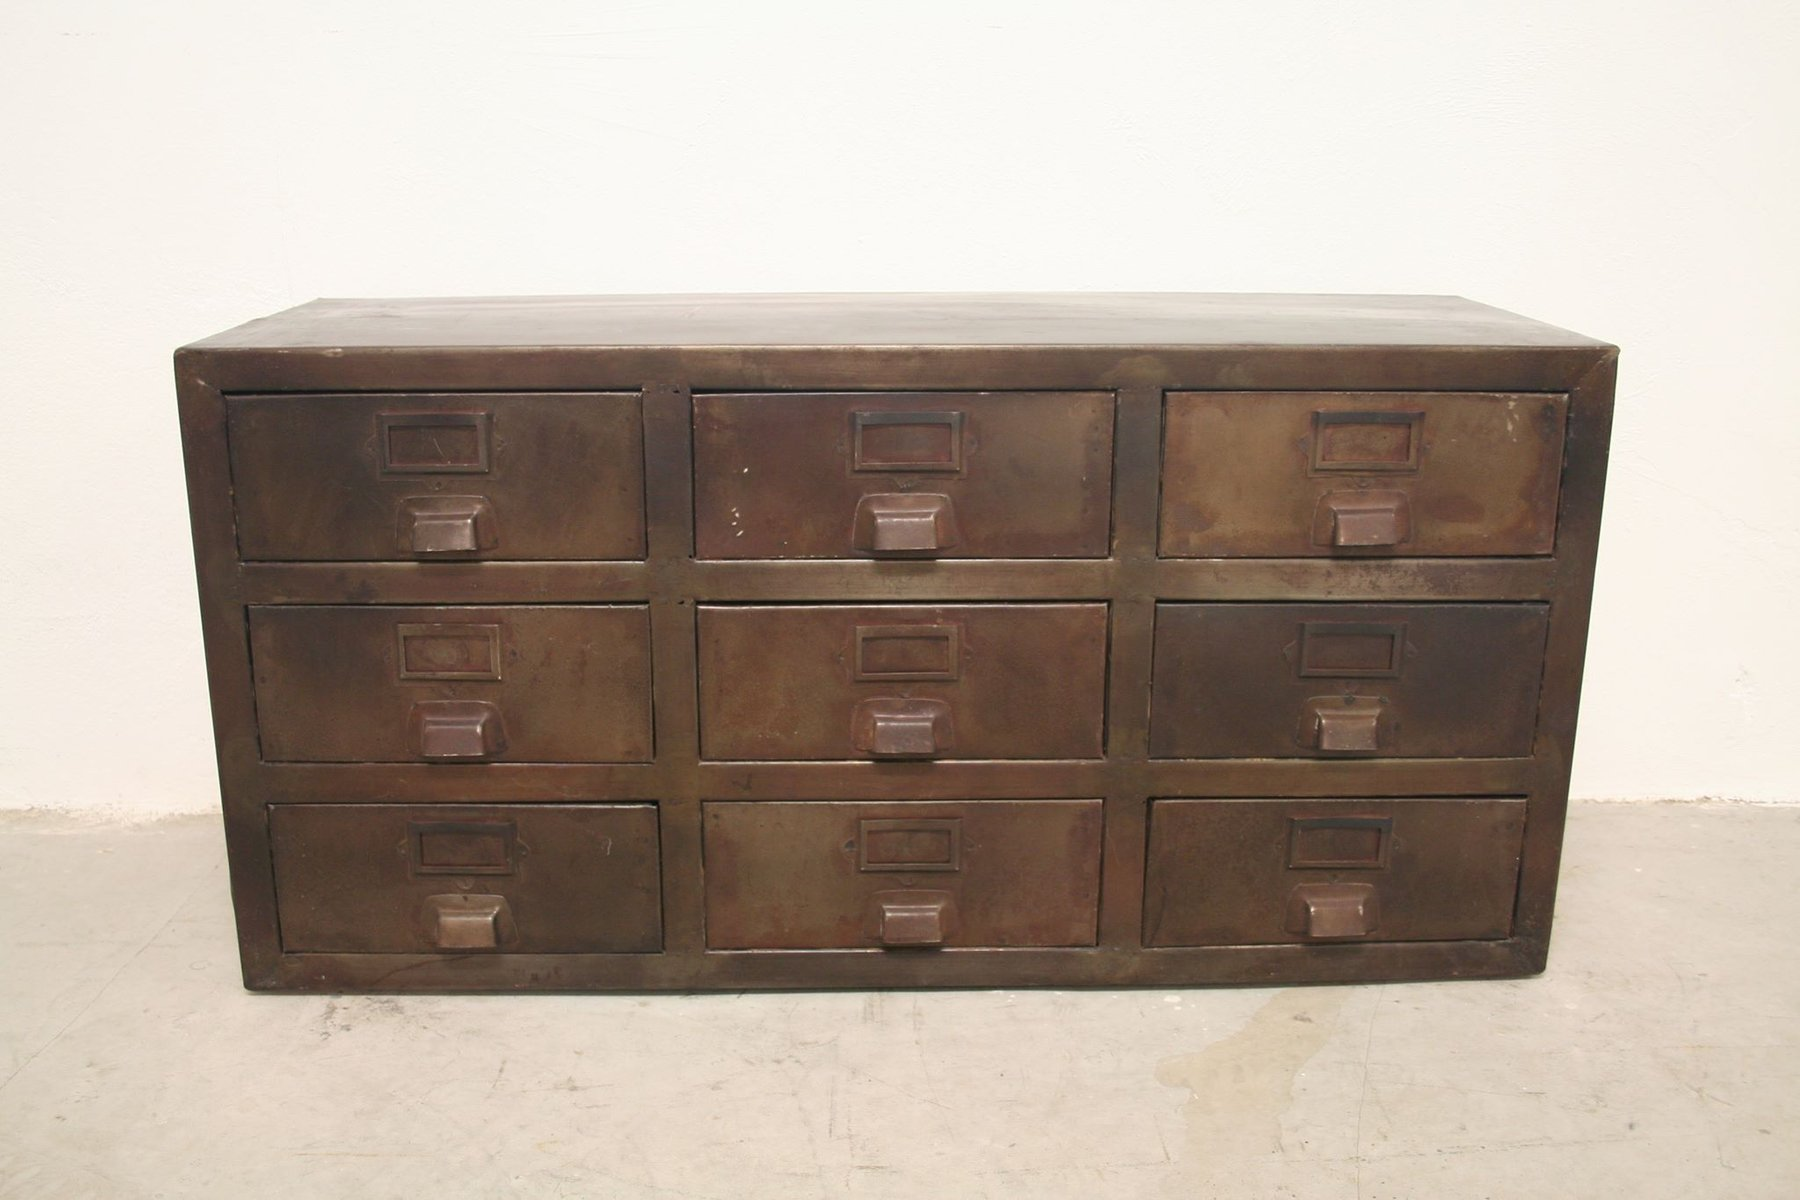 french vintage industrial metal sideboard s for sale at pamono - french vintage industrial metal sideboard s